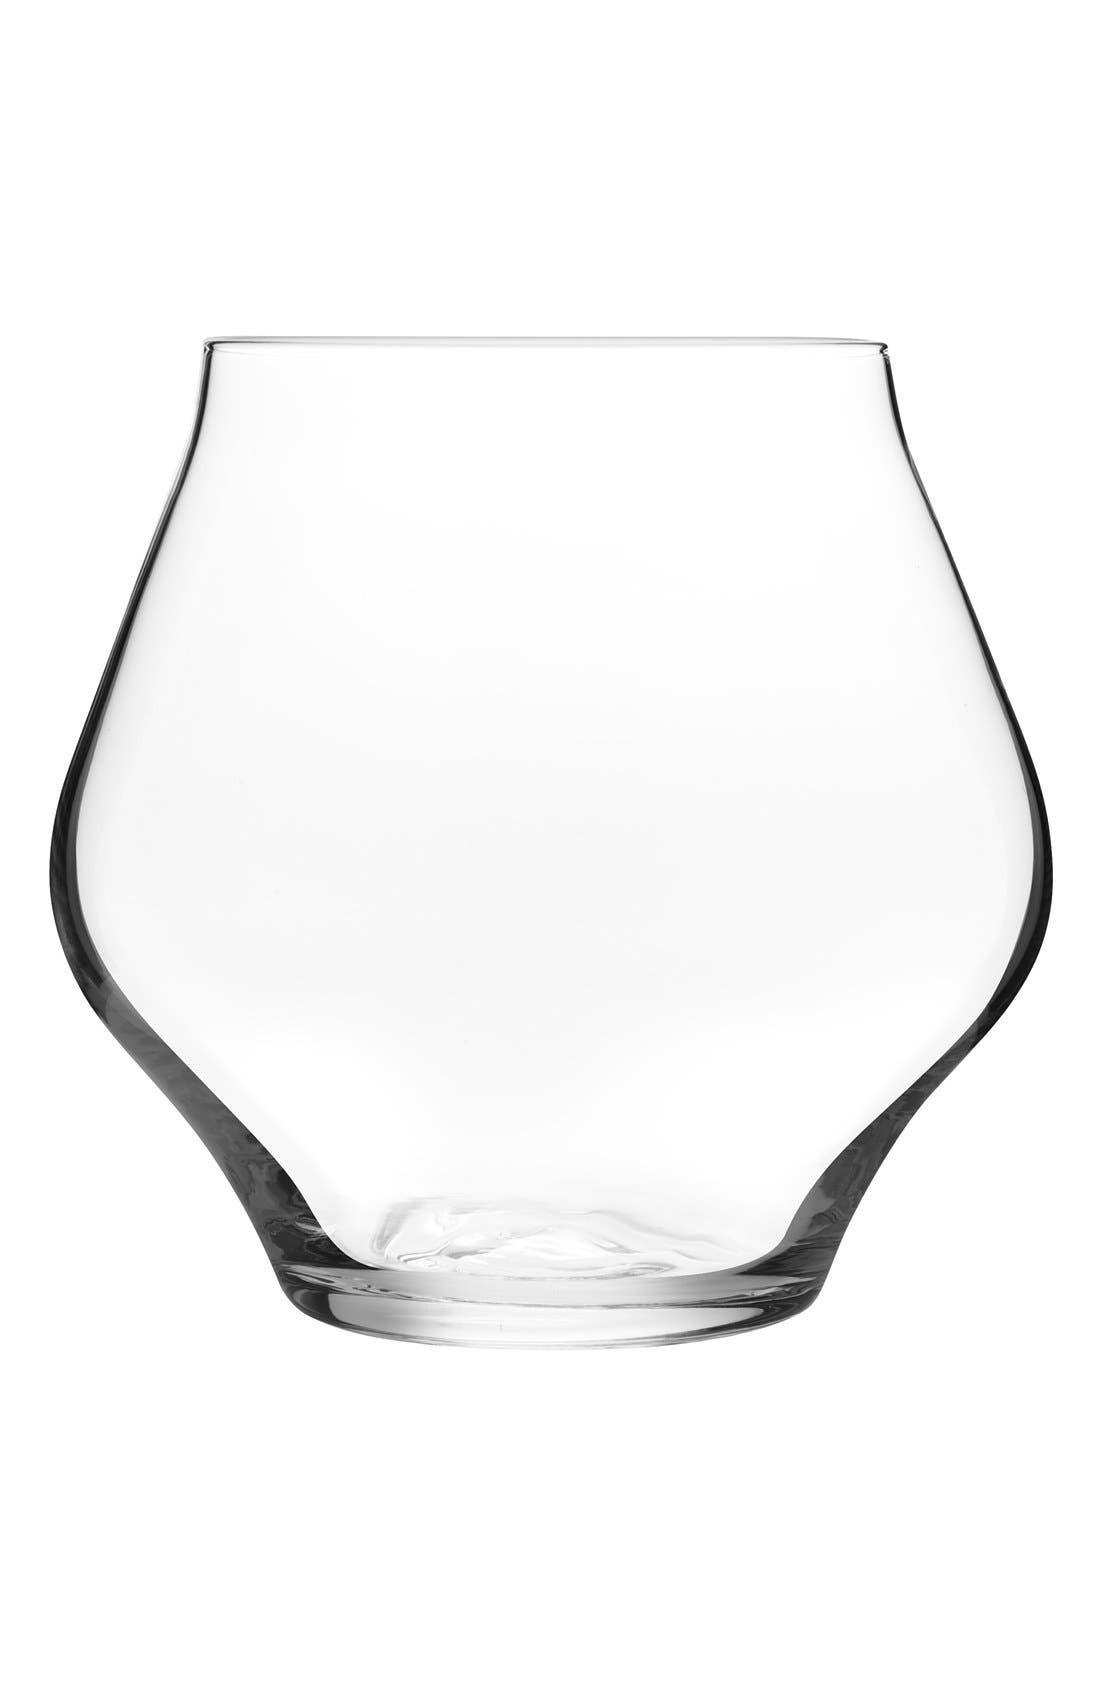 Set of 2 Stemless Wine Glasses,                             Main thumbnail 1, color,                             Clear